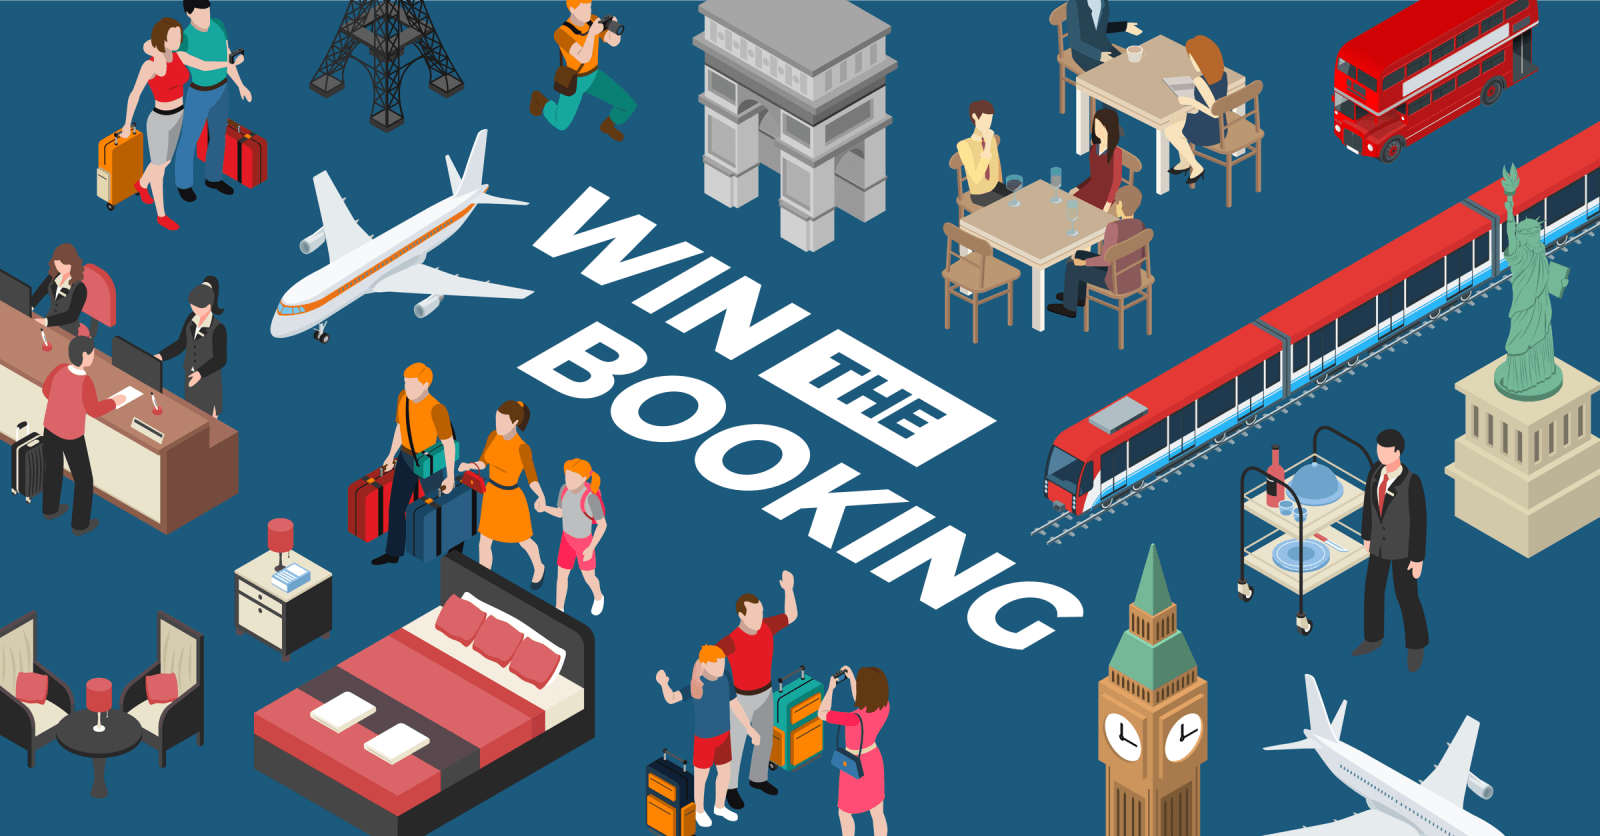 Win-the-Booking-Generic-ÔÇô-2400-x-1254px.png